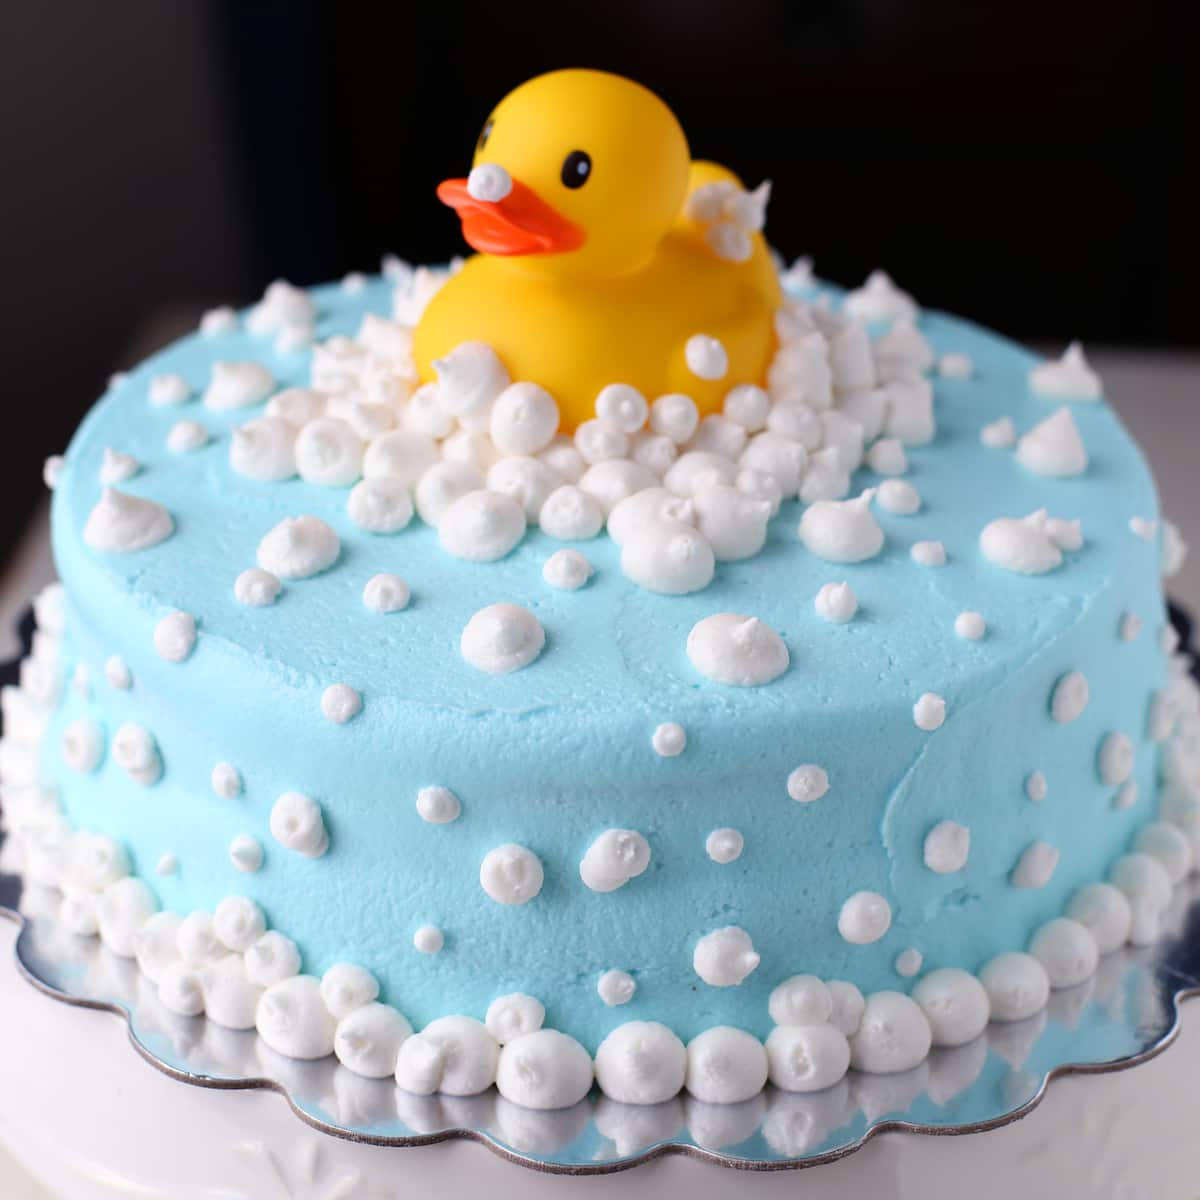 Unique Baby Shower Cake Ideas Legit.ng